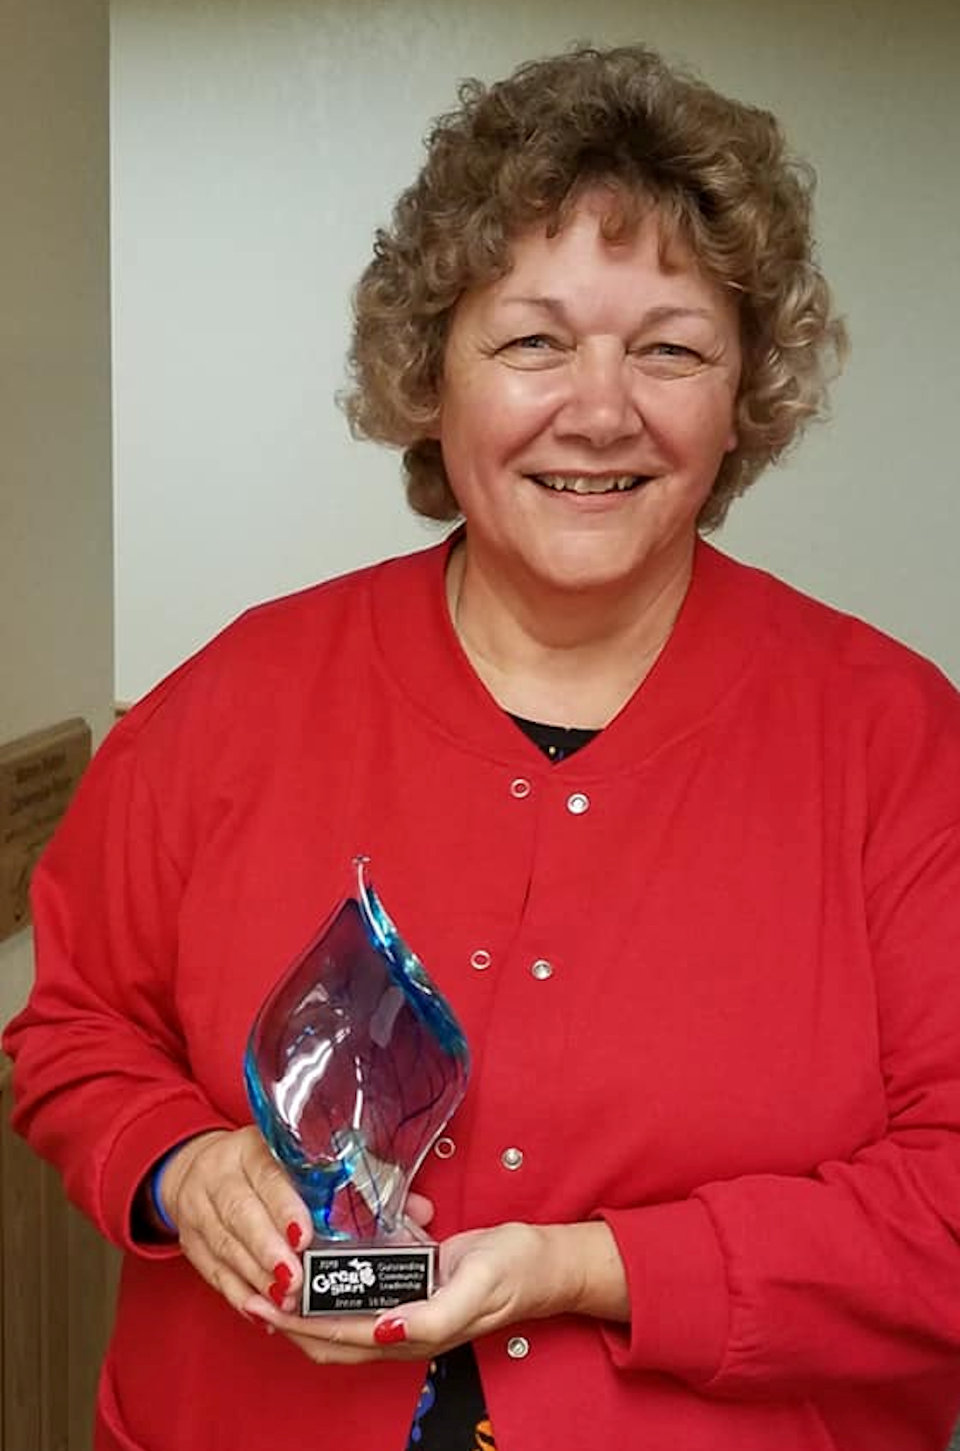 Pastor honored with community award